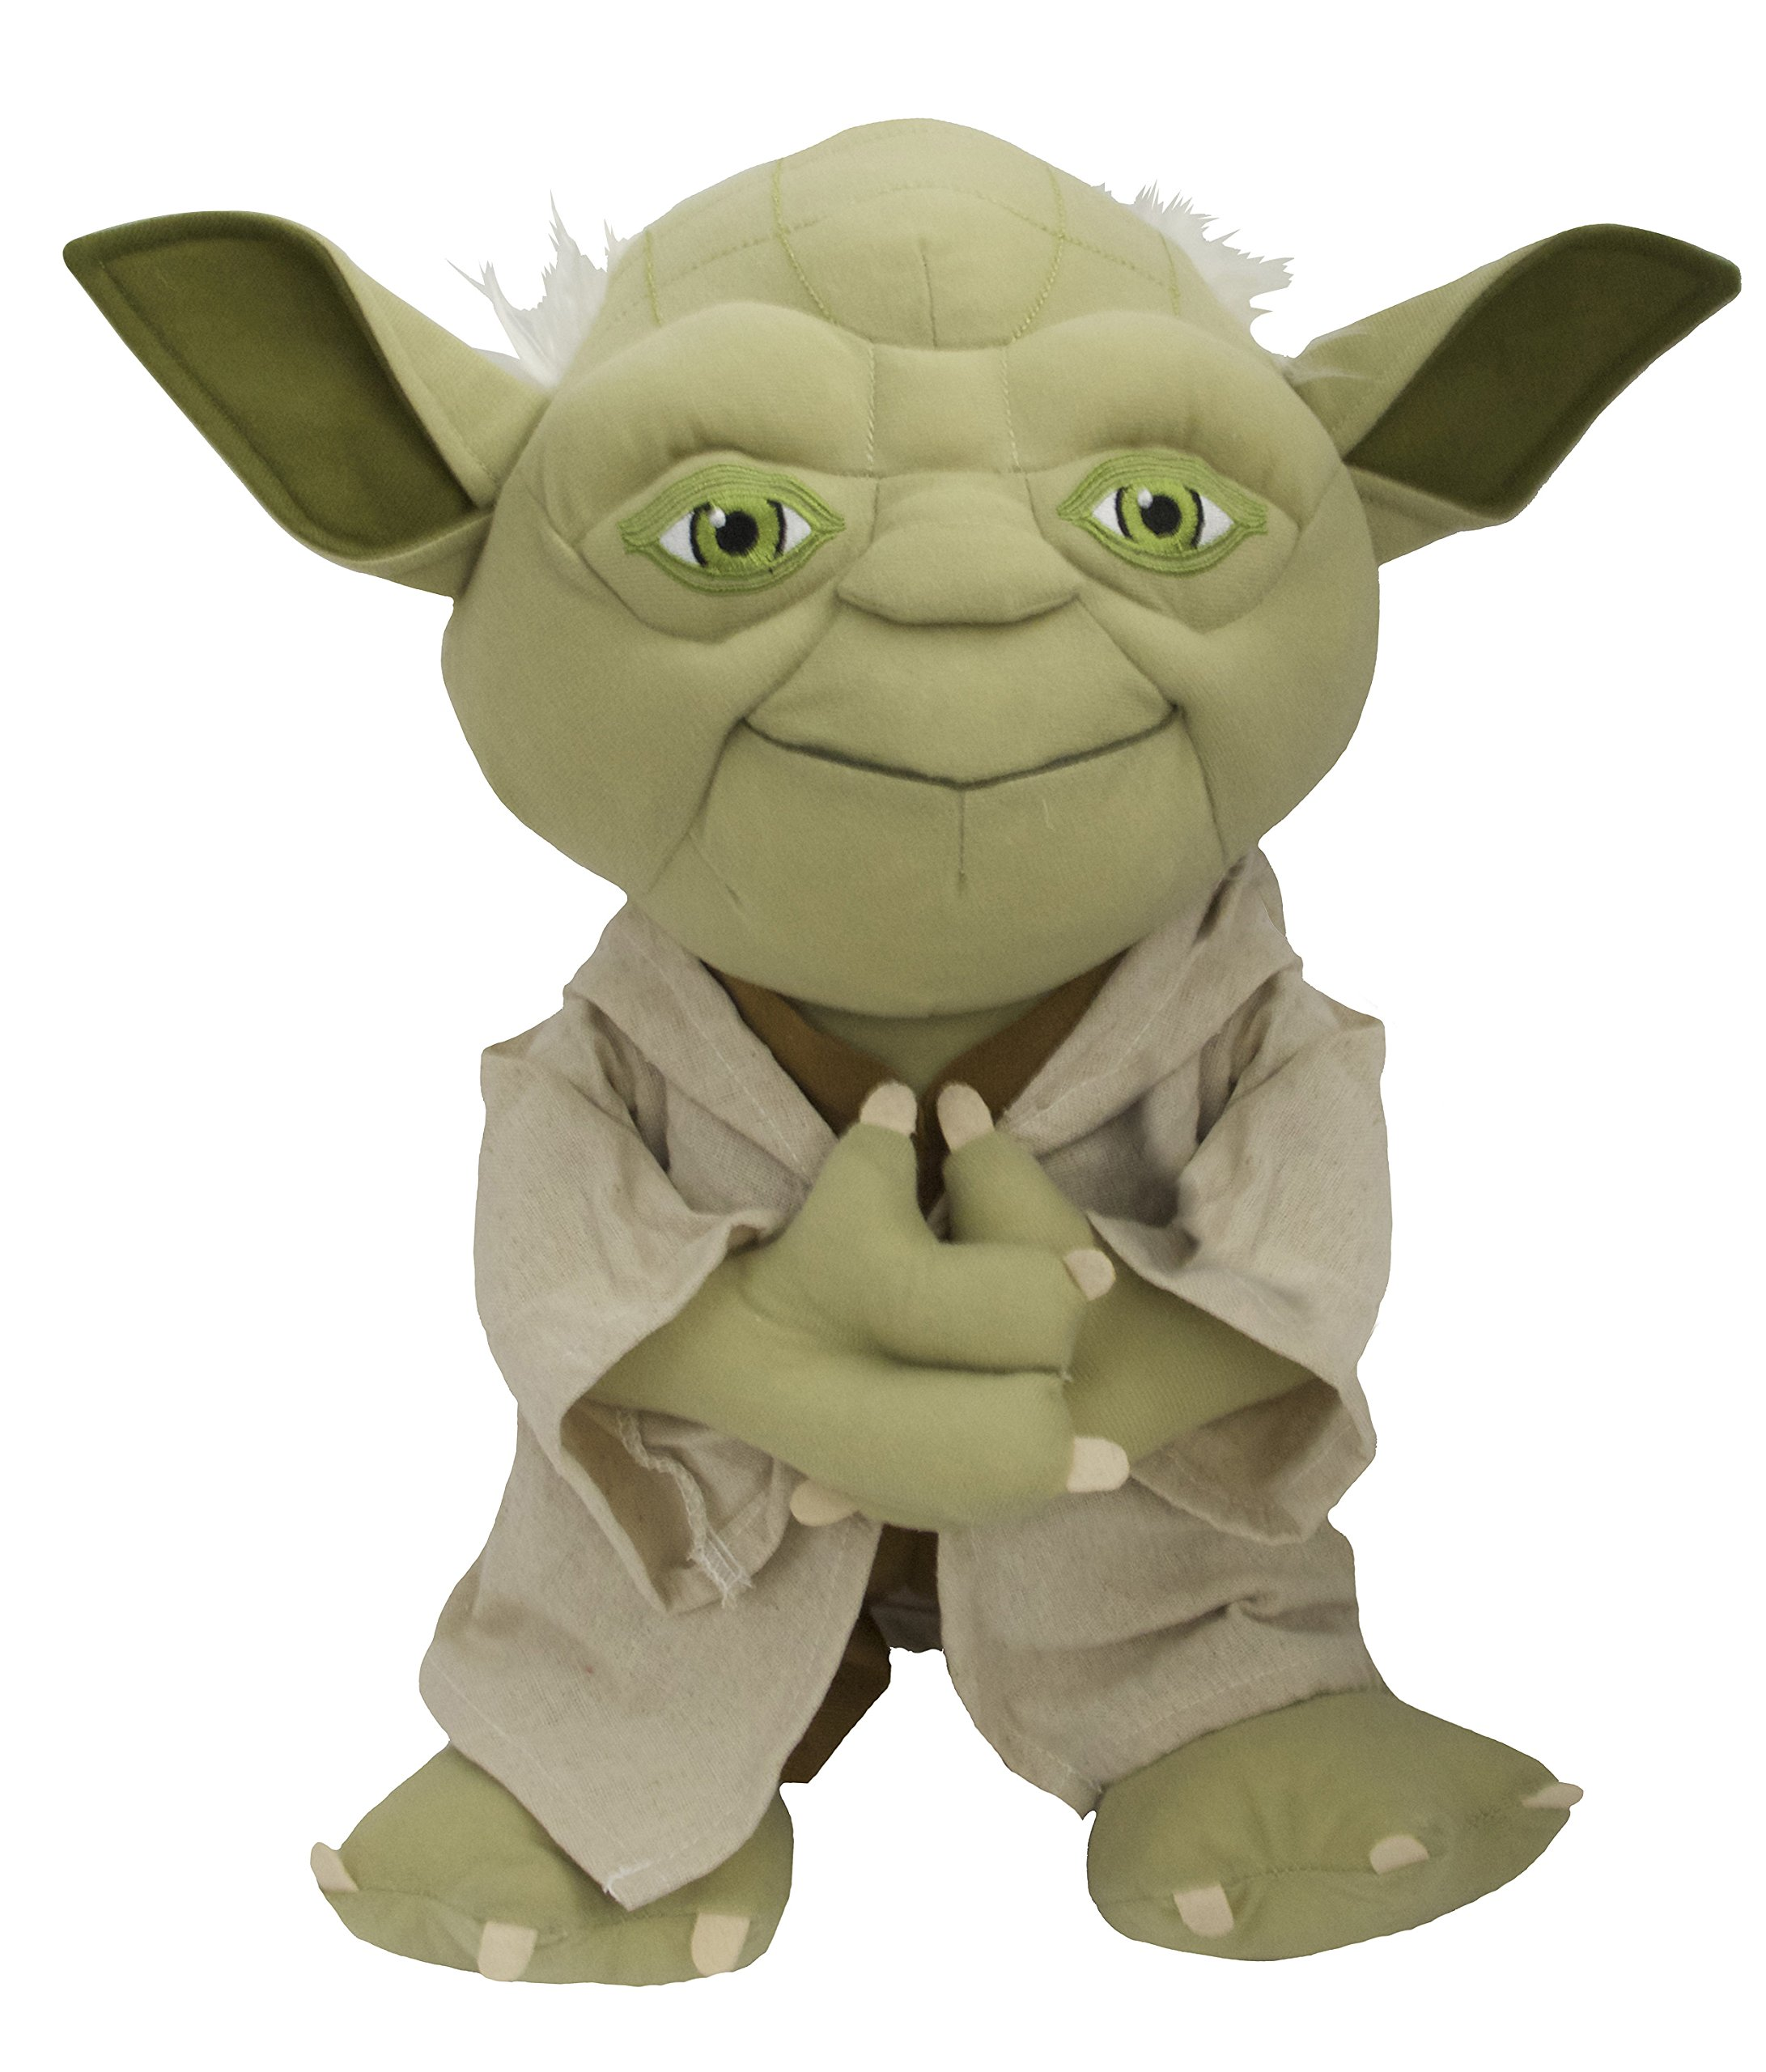 Star Wars Yoda Pillowtime Pal